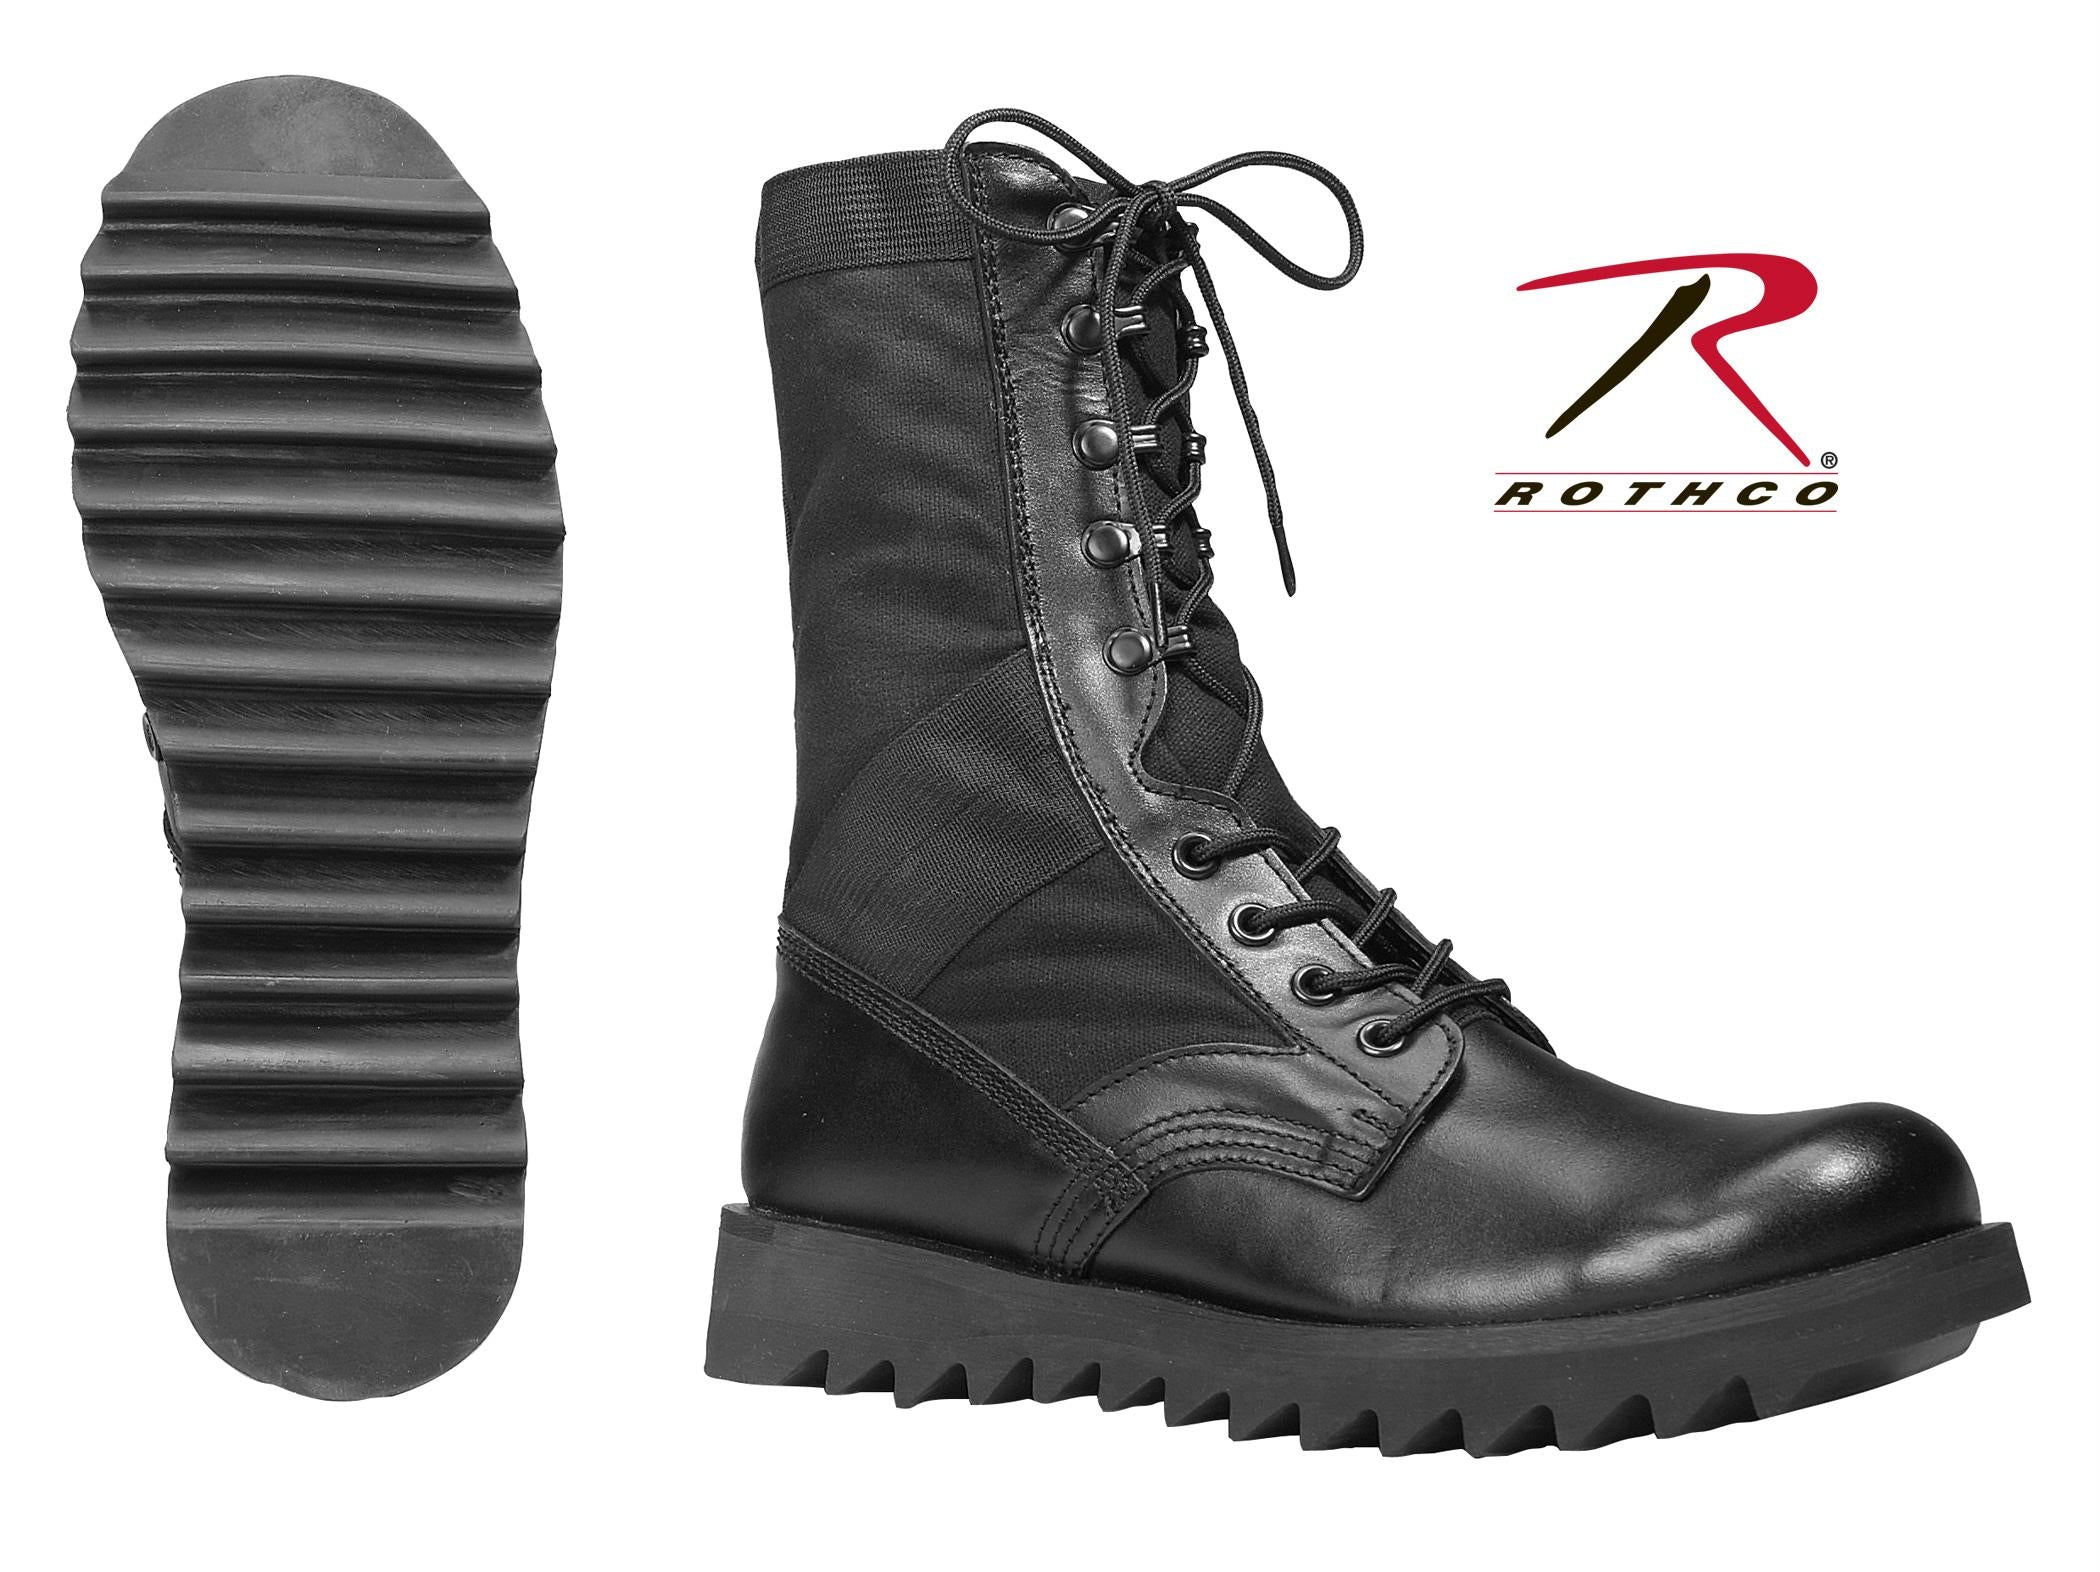 Rothco Black Ripple Sole Jungle Boots - 7 / Wide